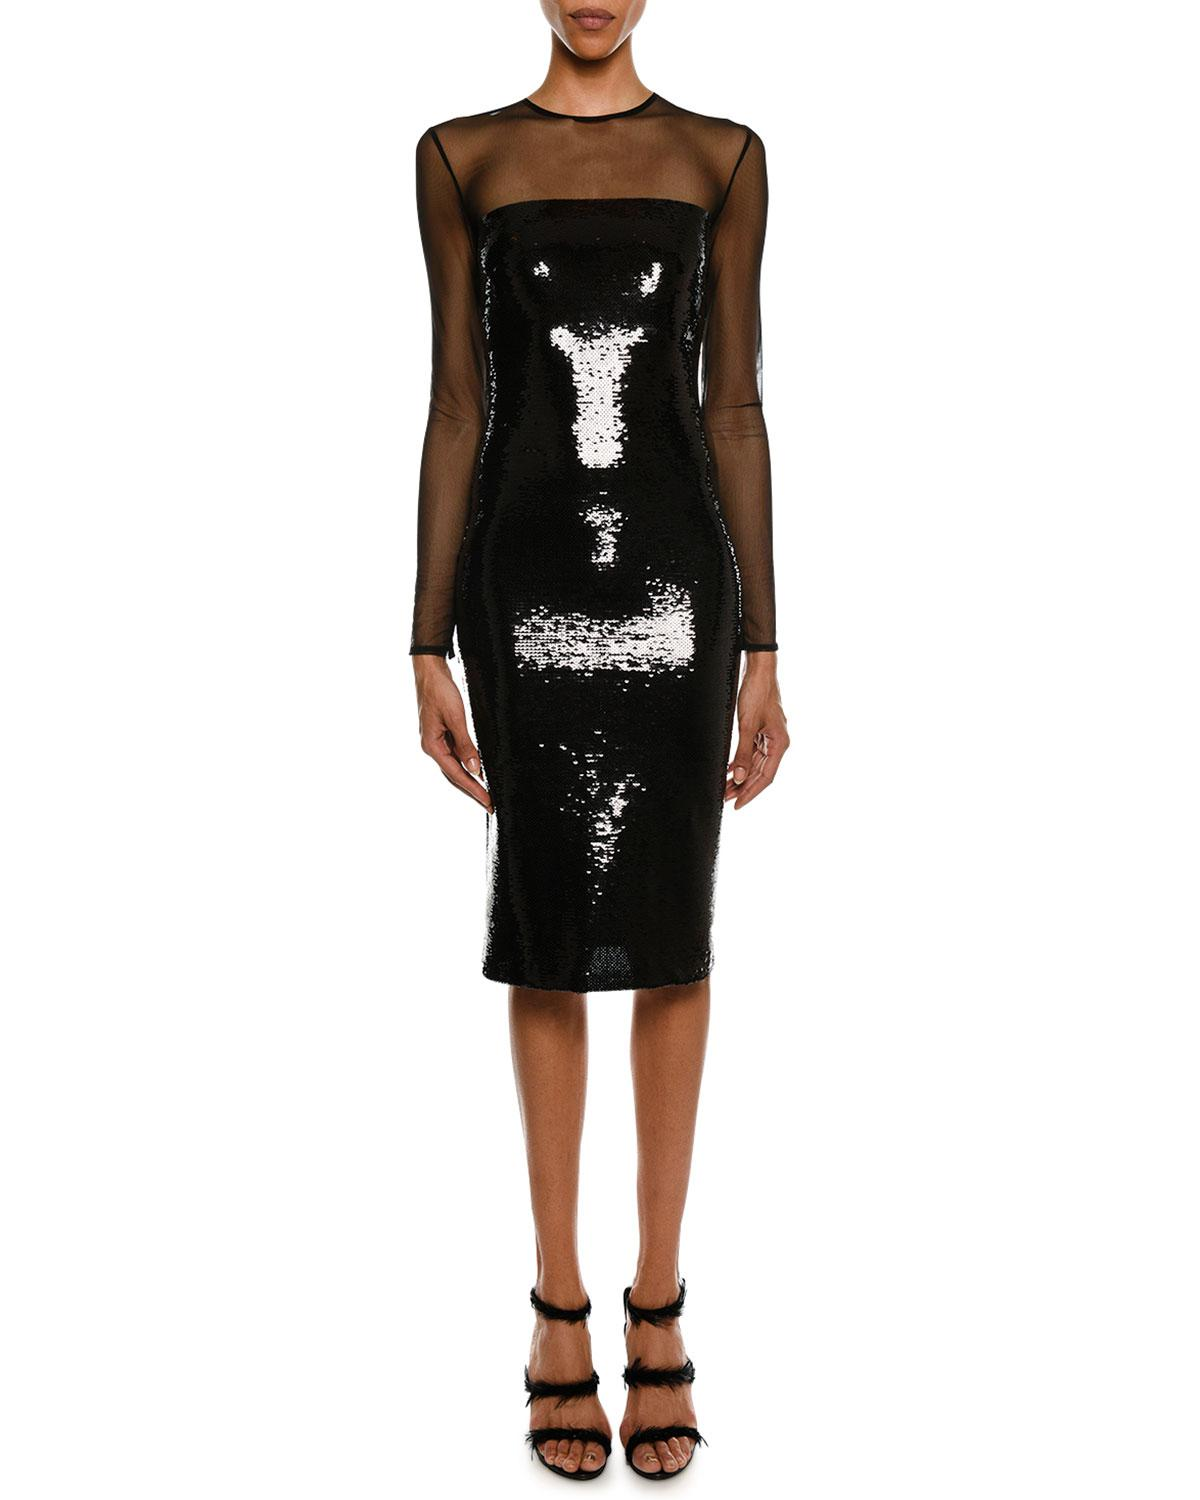 b41167392ea Gallery. Previously sold at  Neiman Marcus · Women s Black Cocktail Dresses